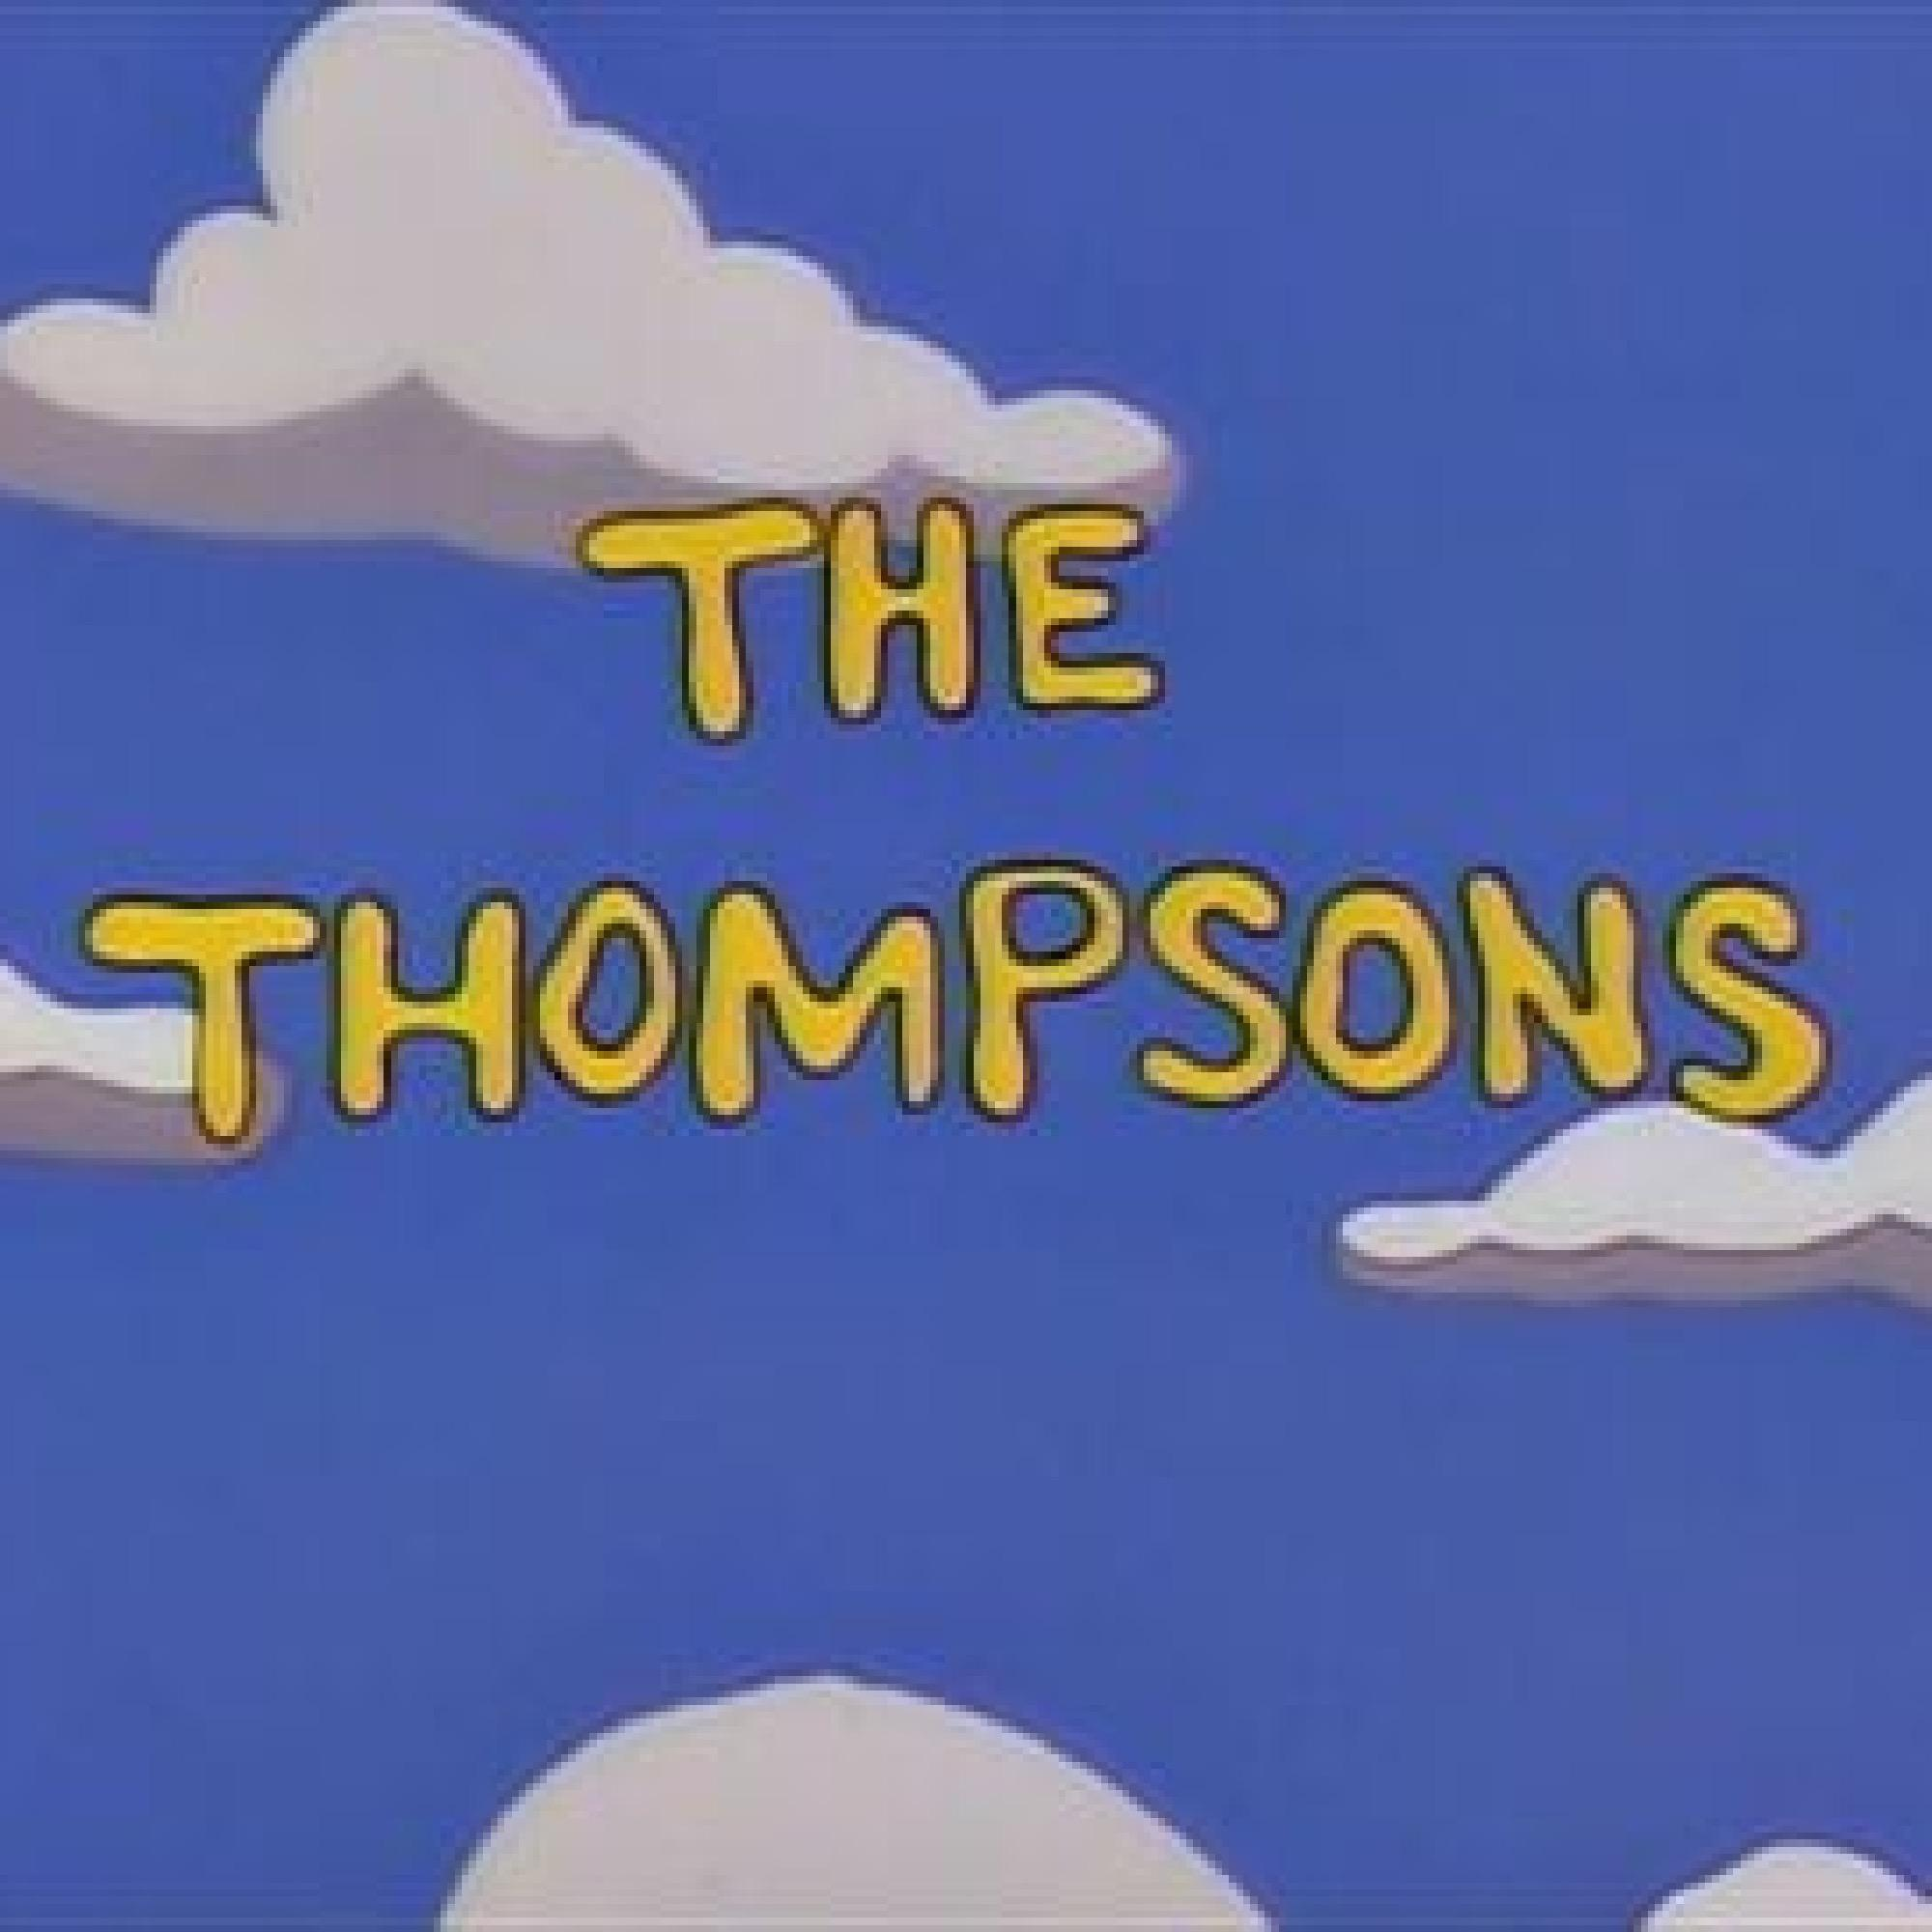 738. Do you remember...? with Mum, Dad & James / Family Stories with The Thompsons